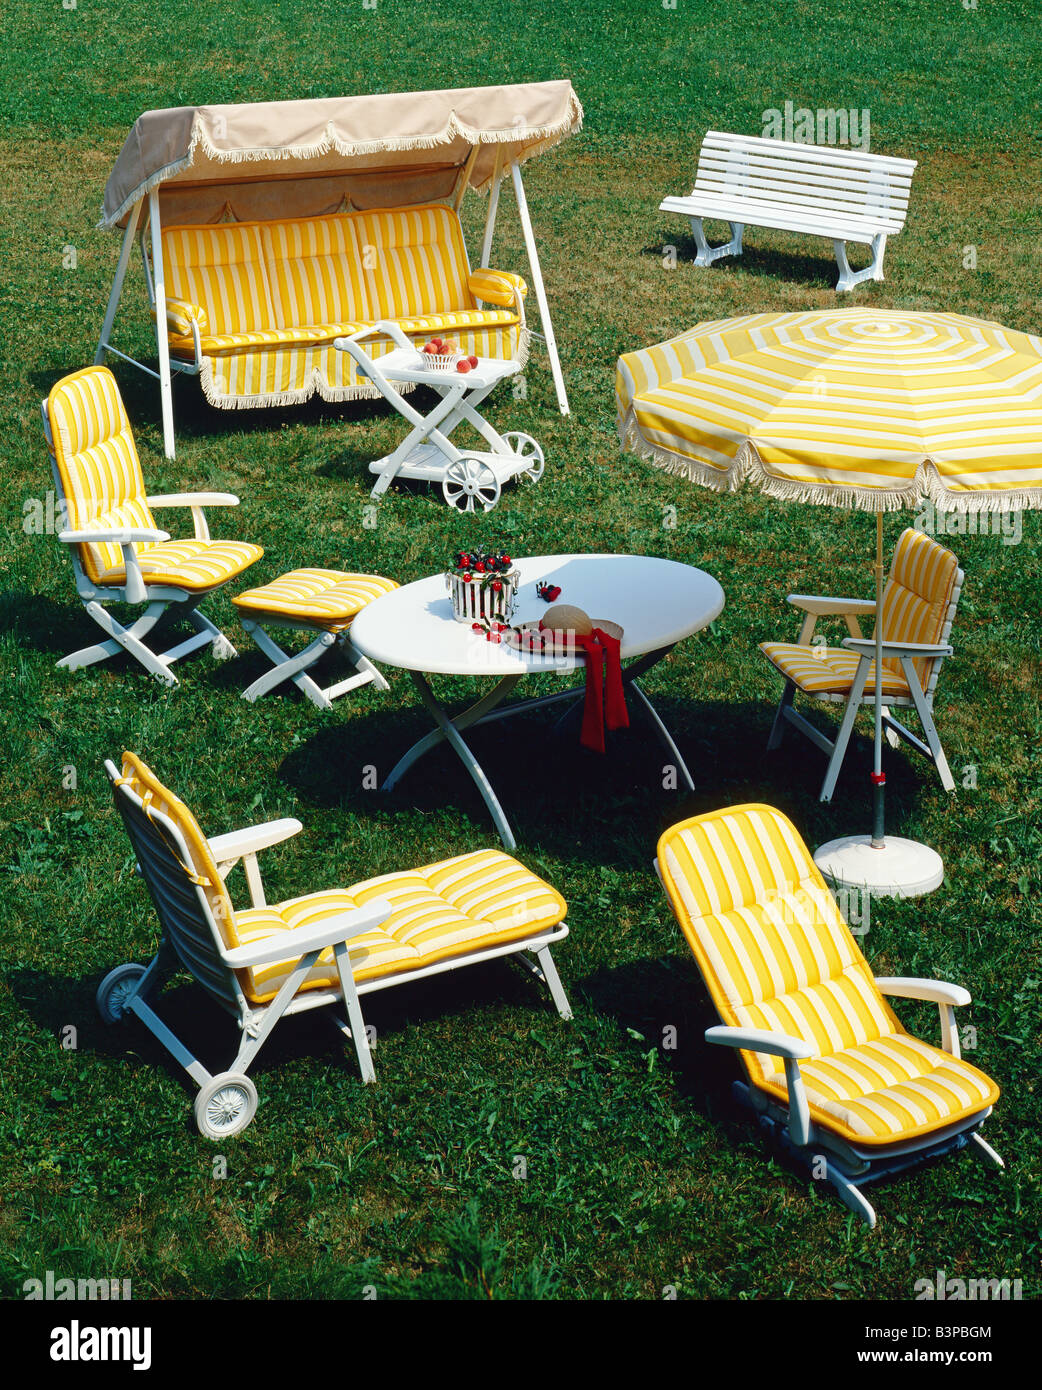 GARDEN FURNITURE CHAIR ARMCHAIRS LAWN SWING AND PARASOL DECORATED WITH YELLOW  STRIPED FABRIC